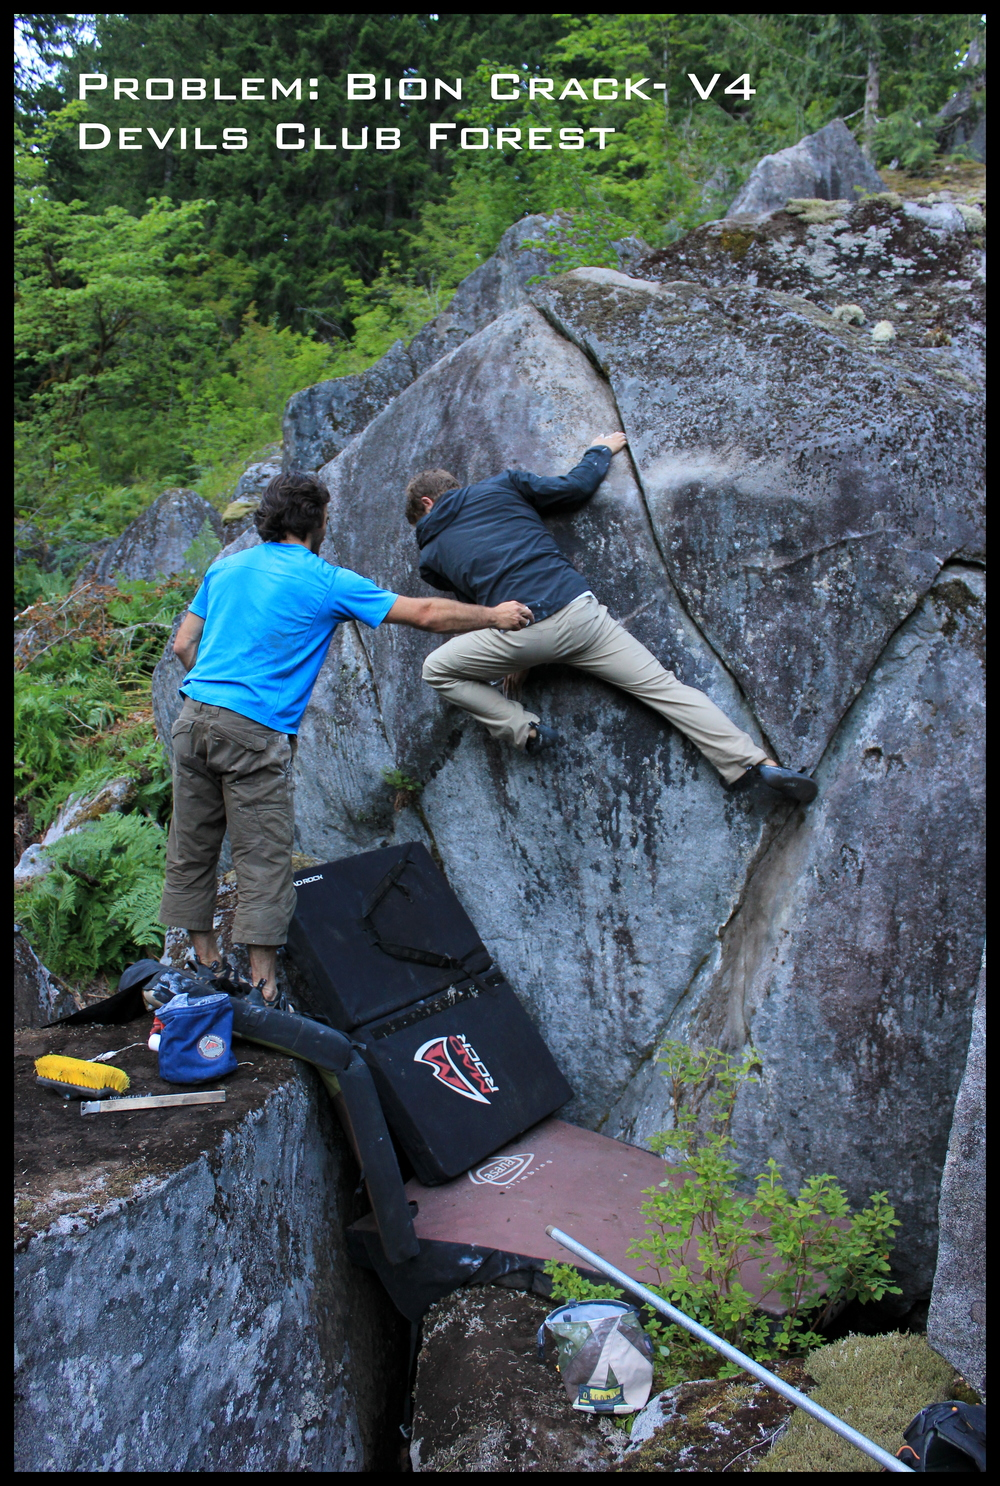 Will Despard on the Bion Crack- V4 with Pablo Zuleta on spot. (FA Pablo Zuleta)